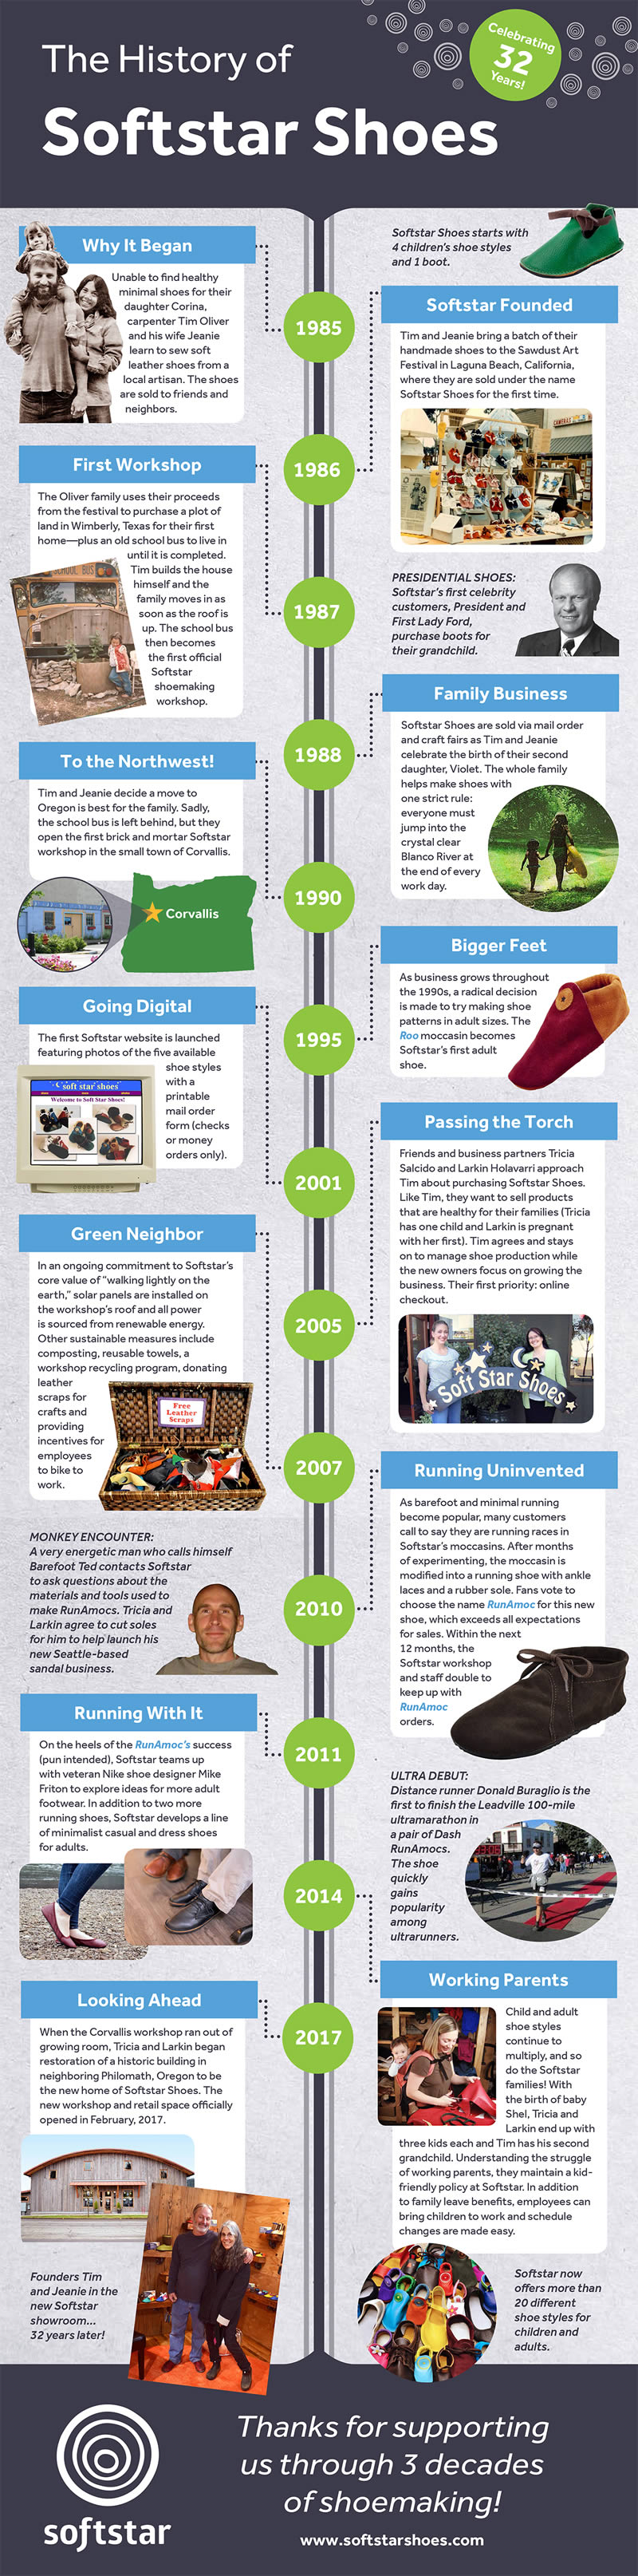 The History of Soft Star: 30 Years of Shoemaking [INFOGRAPHIC]